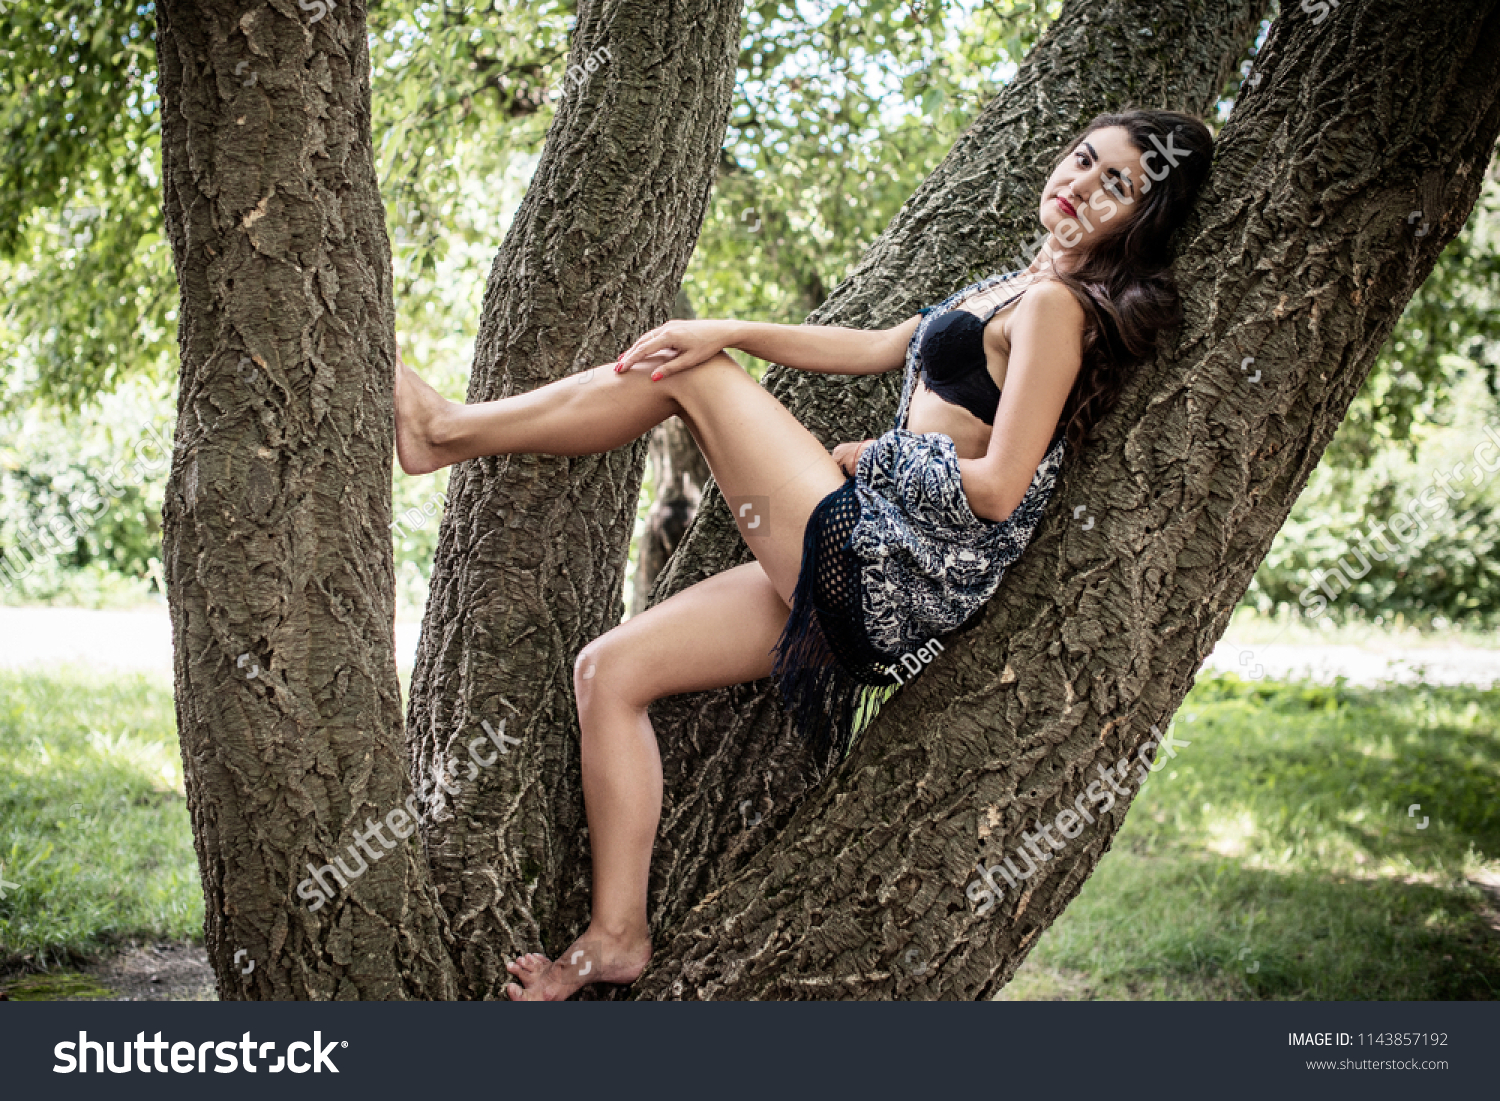 https://image.shutterstock.com/z/stock-photo-fashionable-sexy-woman-with-tan-skin-and-dark-hair-photo-of-dreamy-arabic-girl-posing-at-romantic-1143857192.jpg